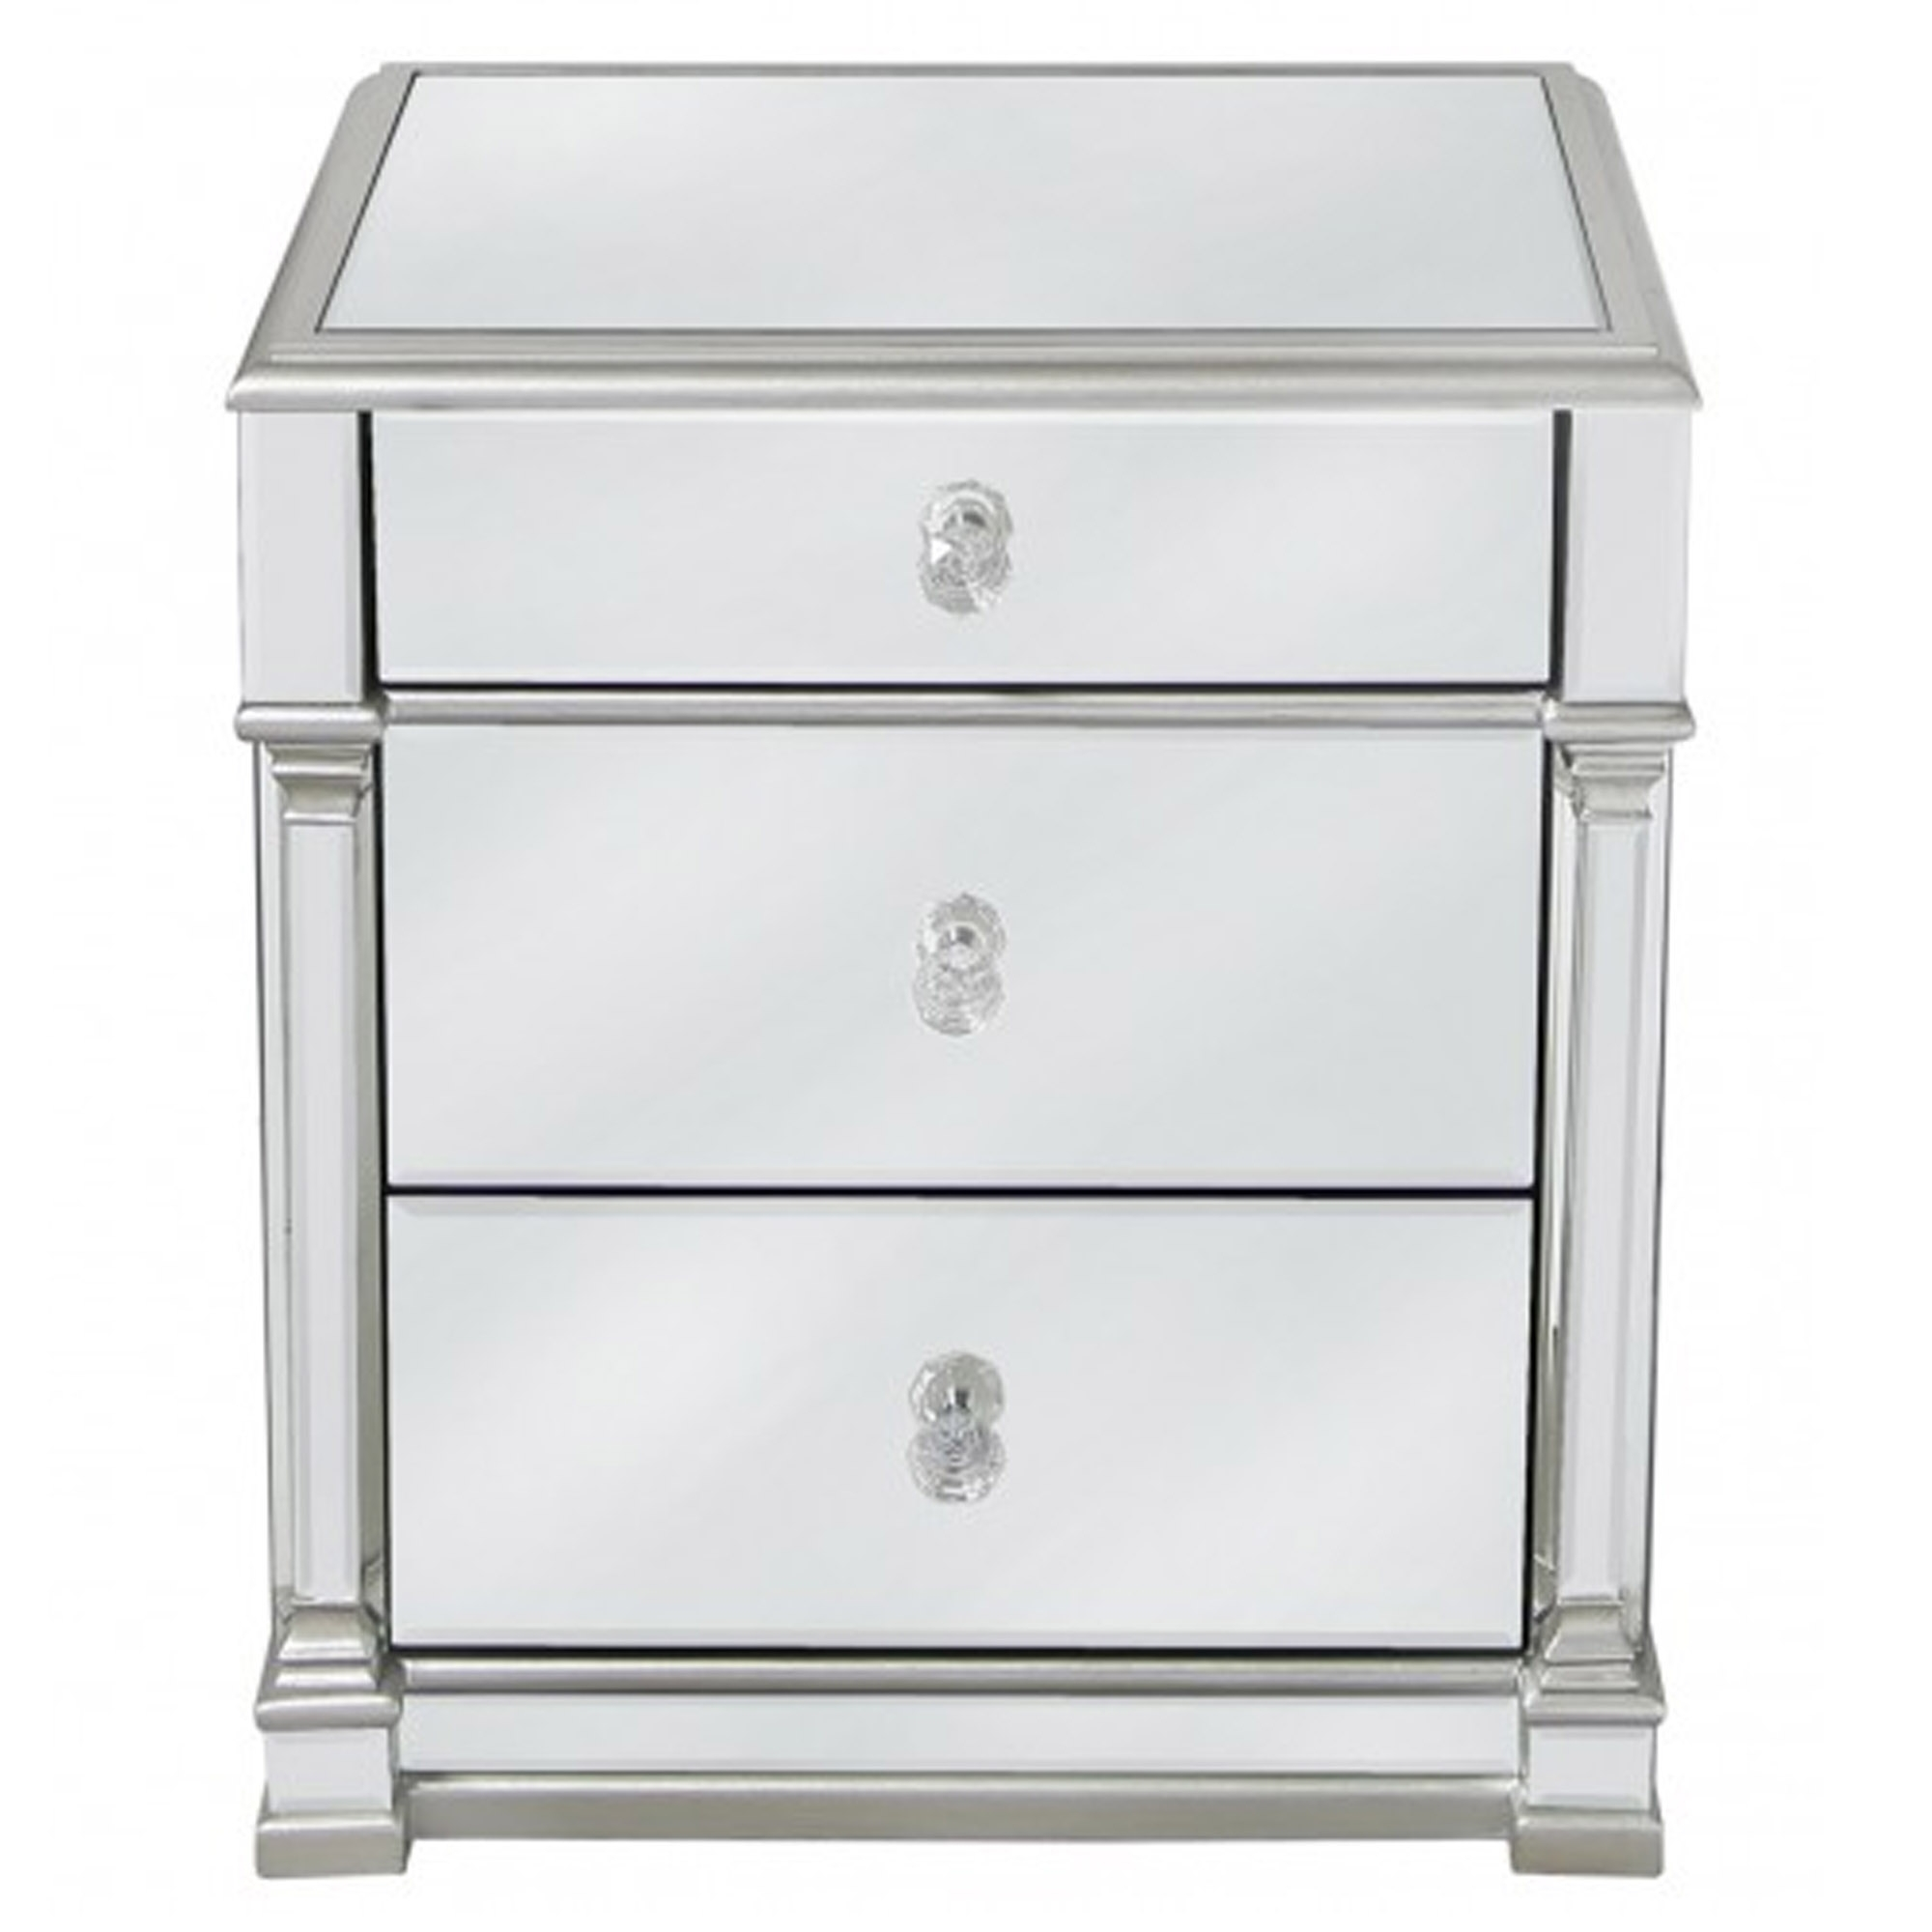 e7d6fde2ccee Livorno Silver Mirrored 3 Drawer Bedside Table | Modern Bedroom